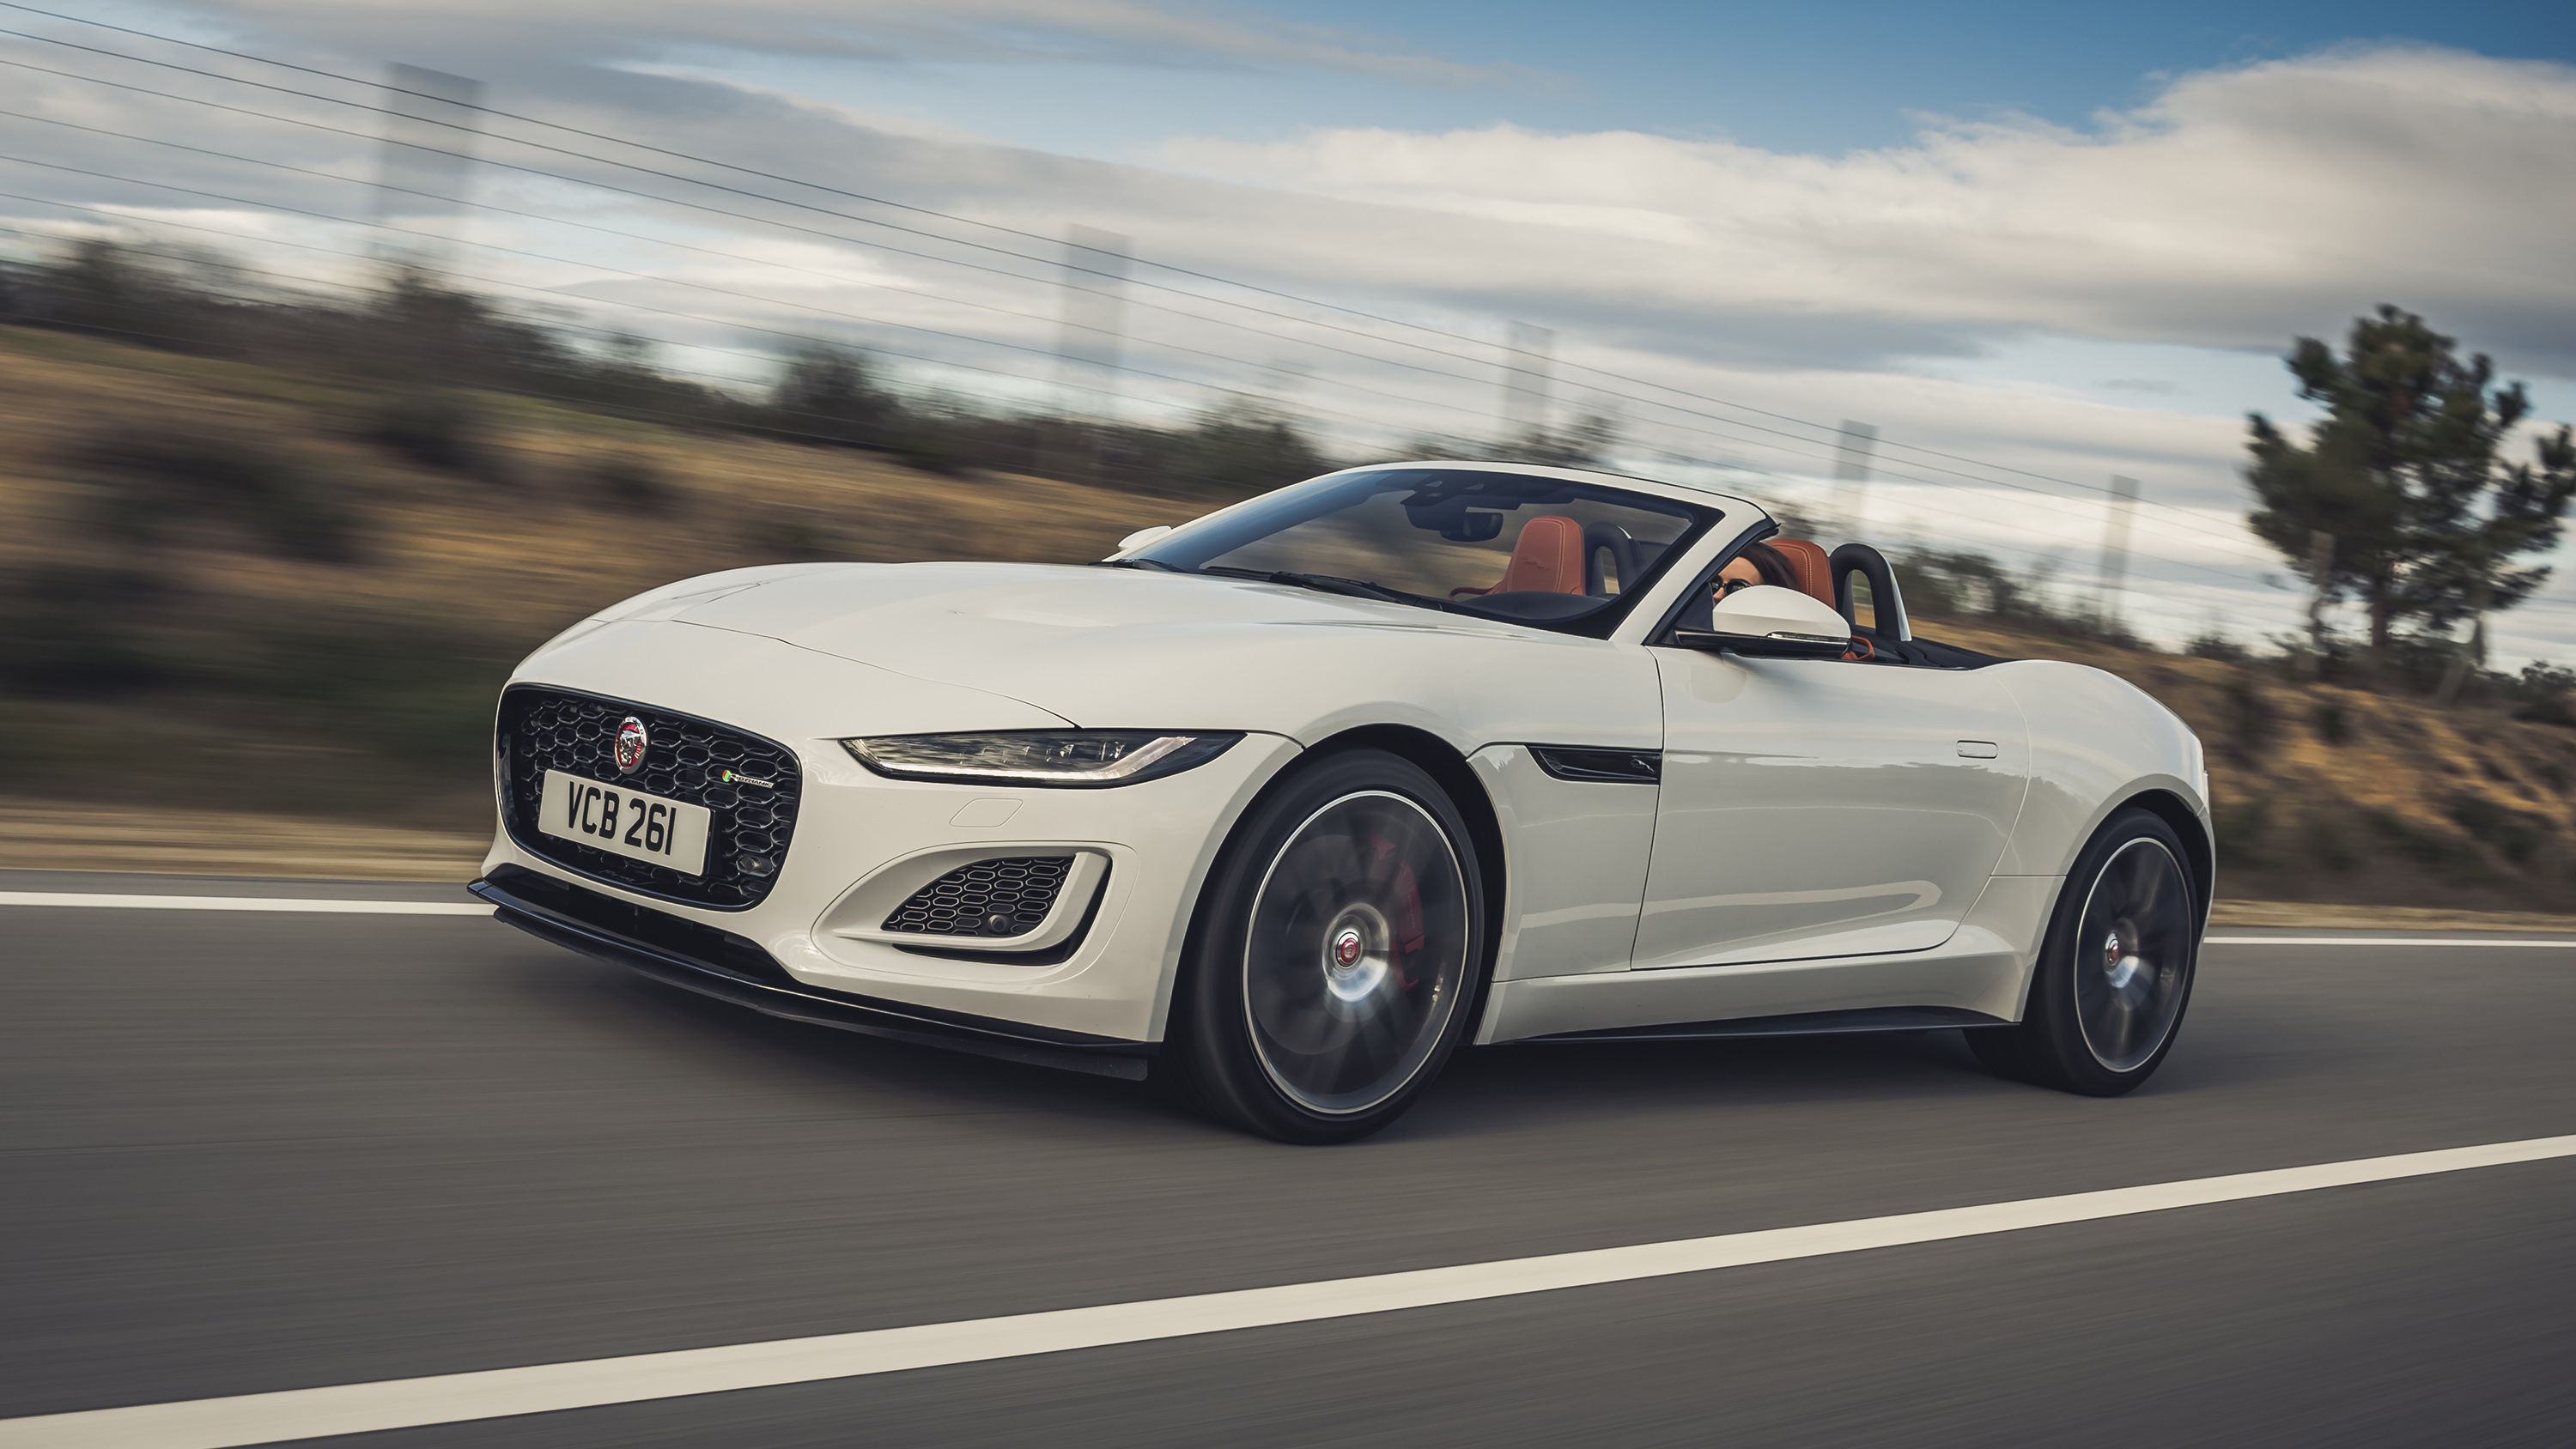 2dr coupe, 2dr coupe s and the 2dr coupe r. Jaguar F Type Coupe Review 2021 Top Gear